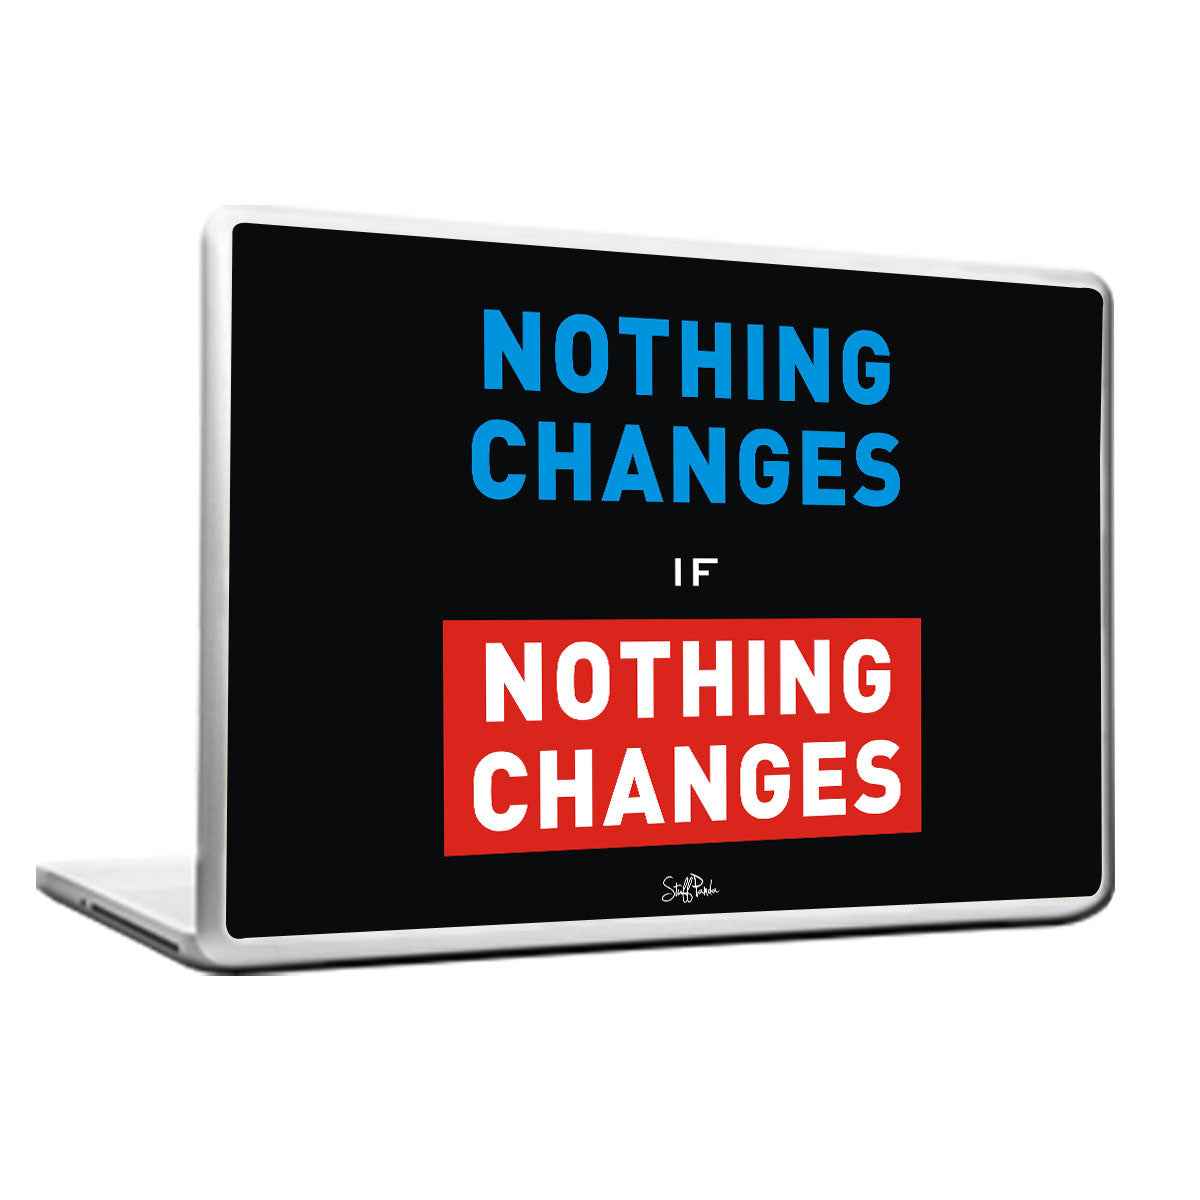 Cool Funky Motivational Nothing changes Laptop skin vinyl decals - stuffpanda - 1